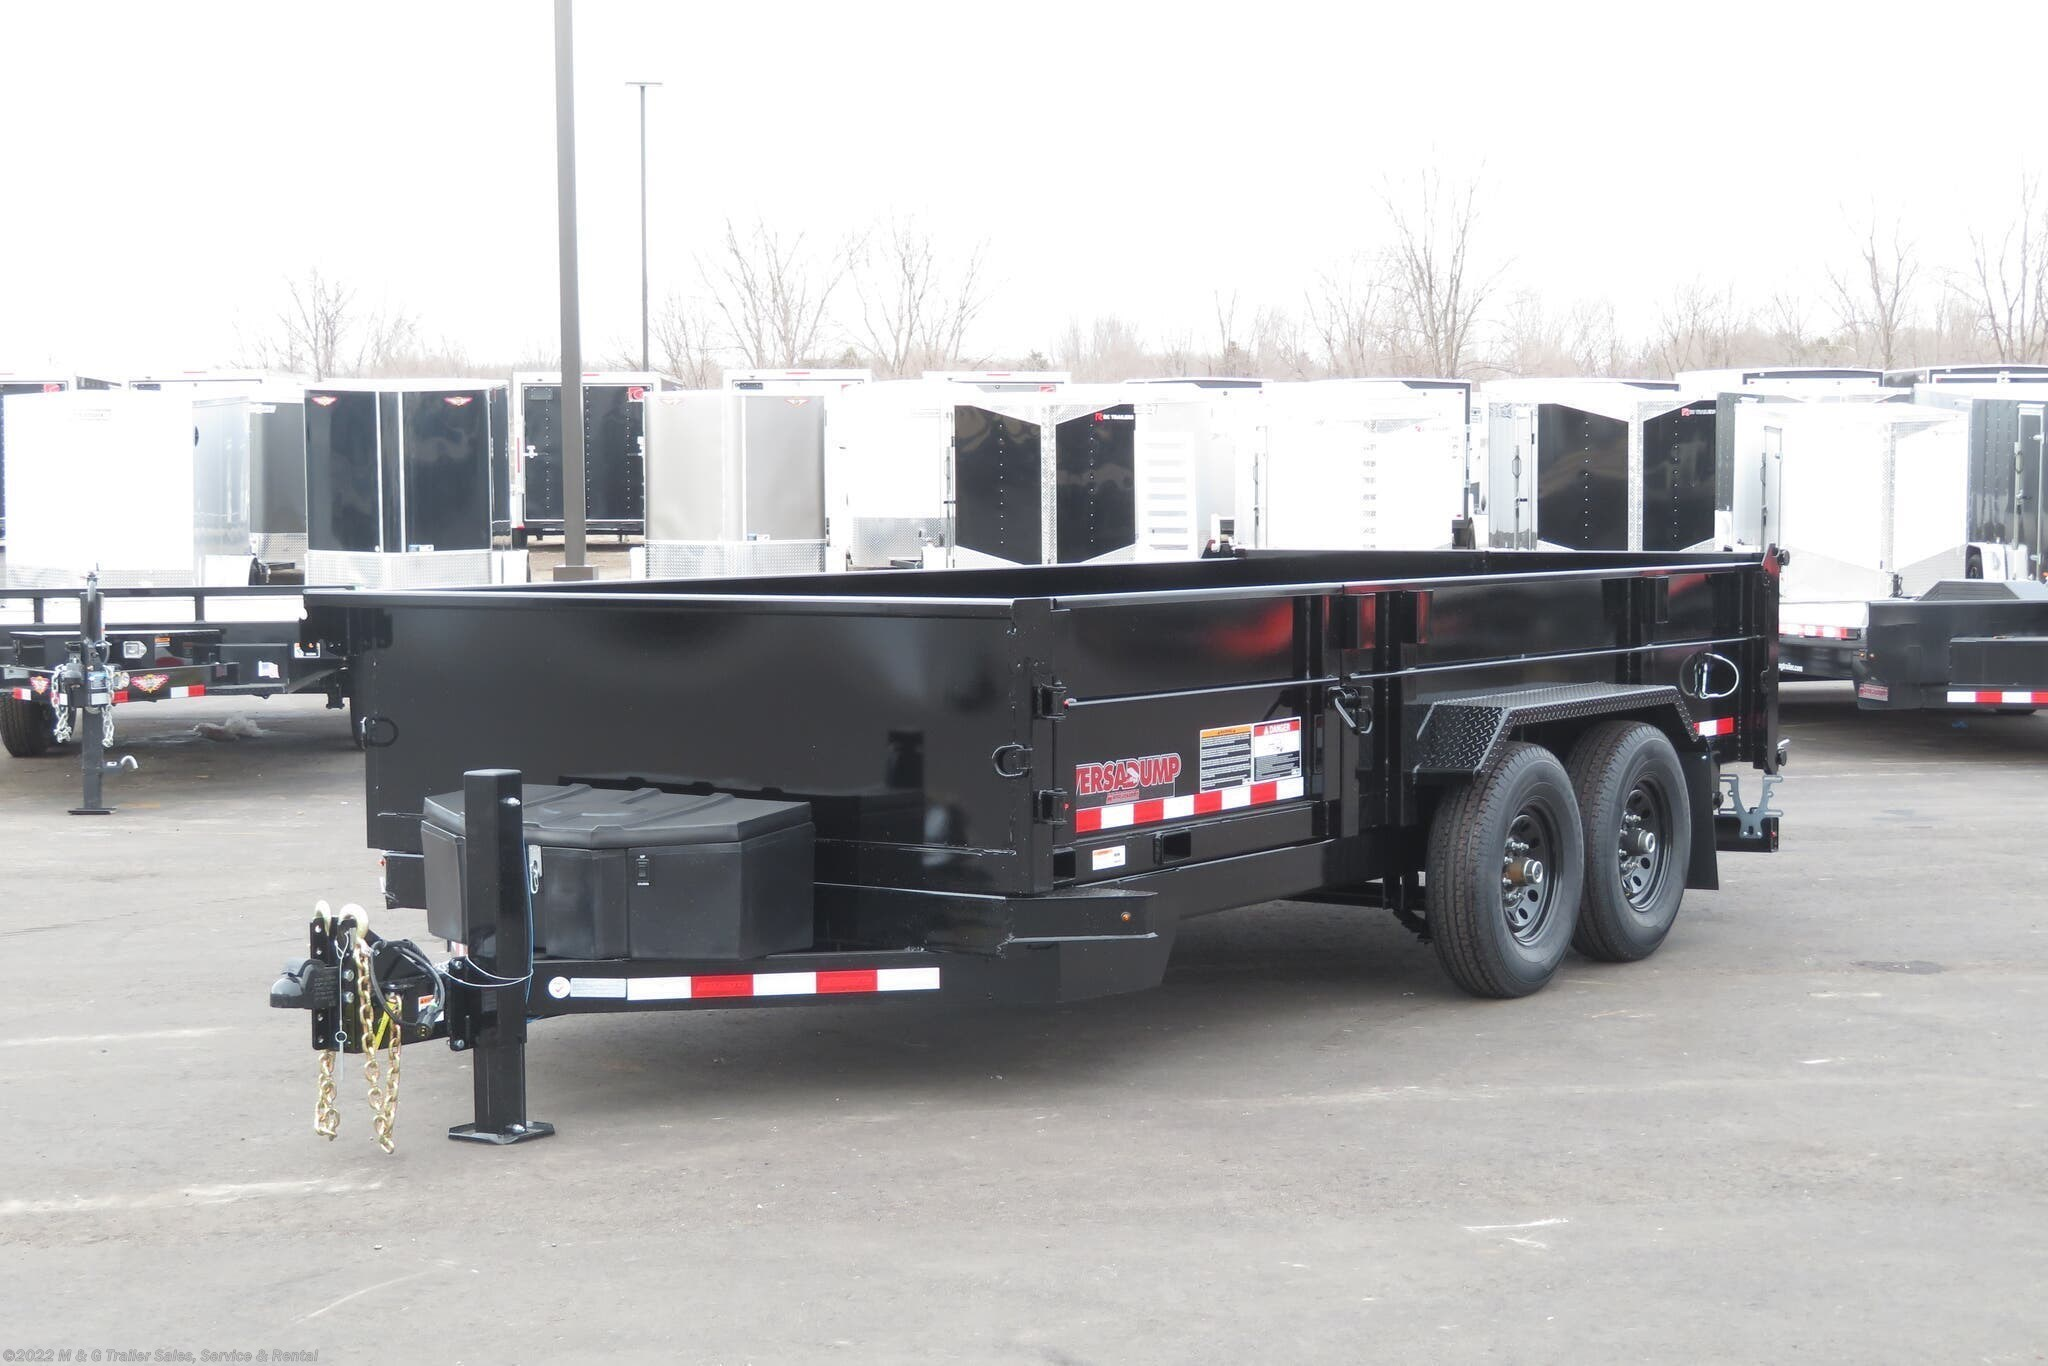 2020 Midsota 14' Dump Trailer - Black - Stock #003611